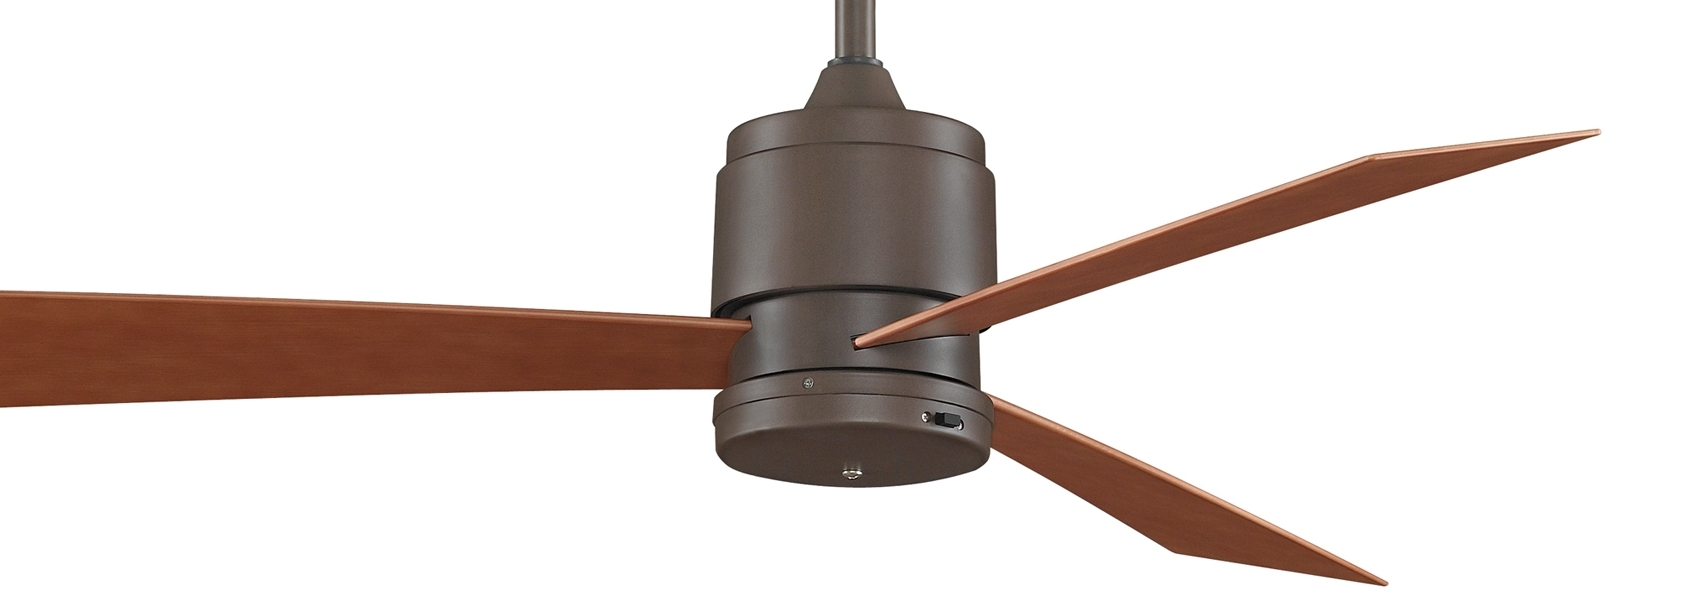 Gold Coast Outdoor Ceiling Fans Regarding Trendy Gold Coast Ceiling Fans (View 7 of 20)